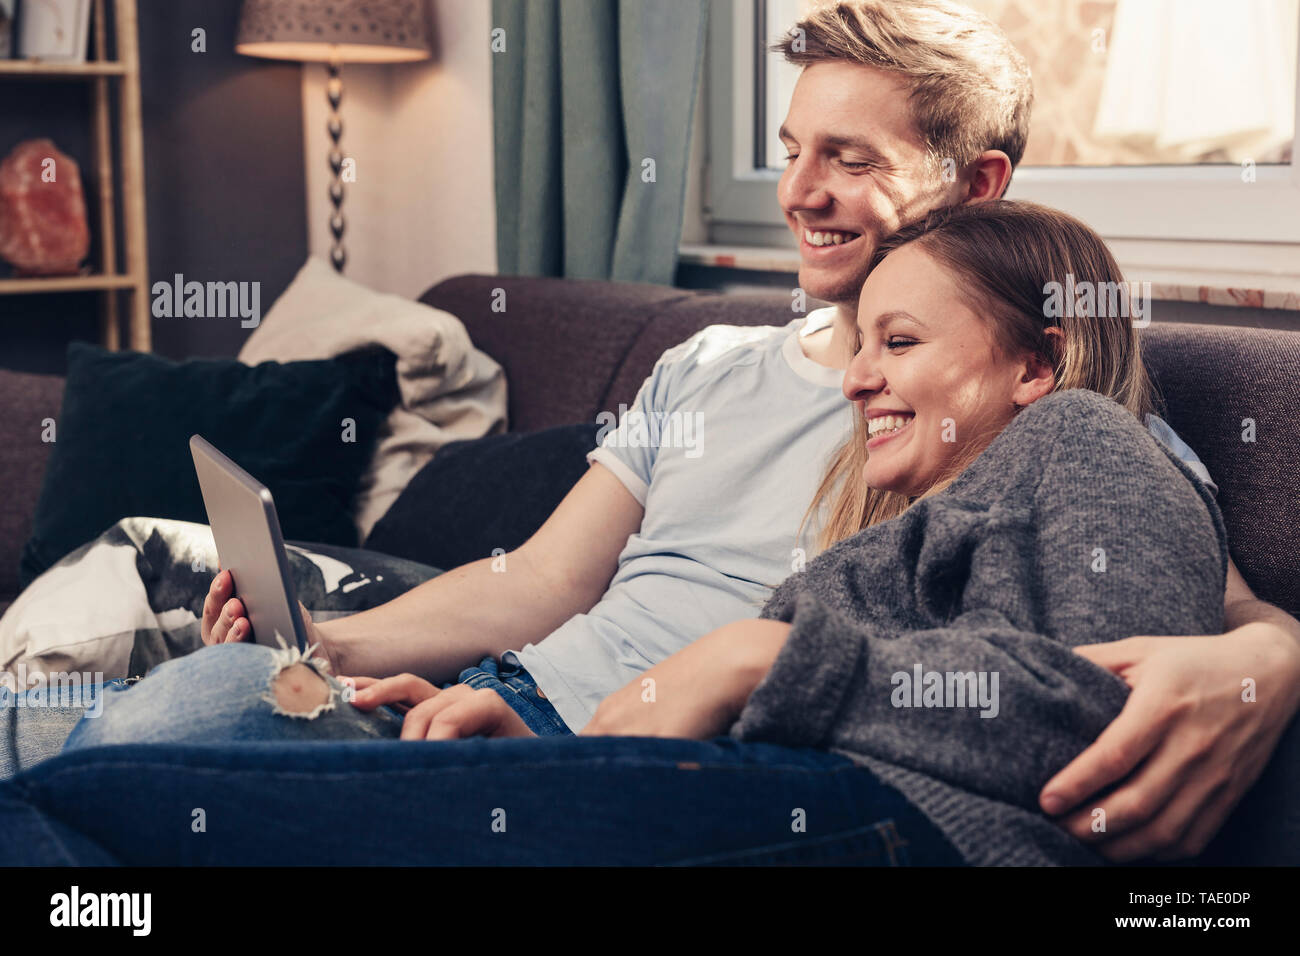 Happy young couple using tablet on couch at home - Stock Image